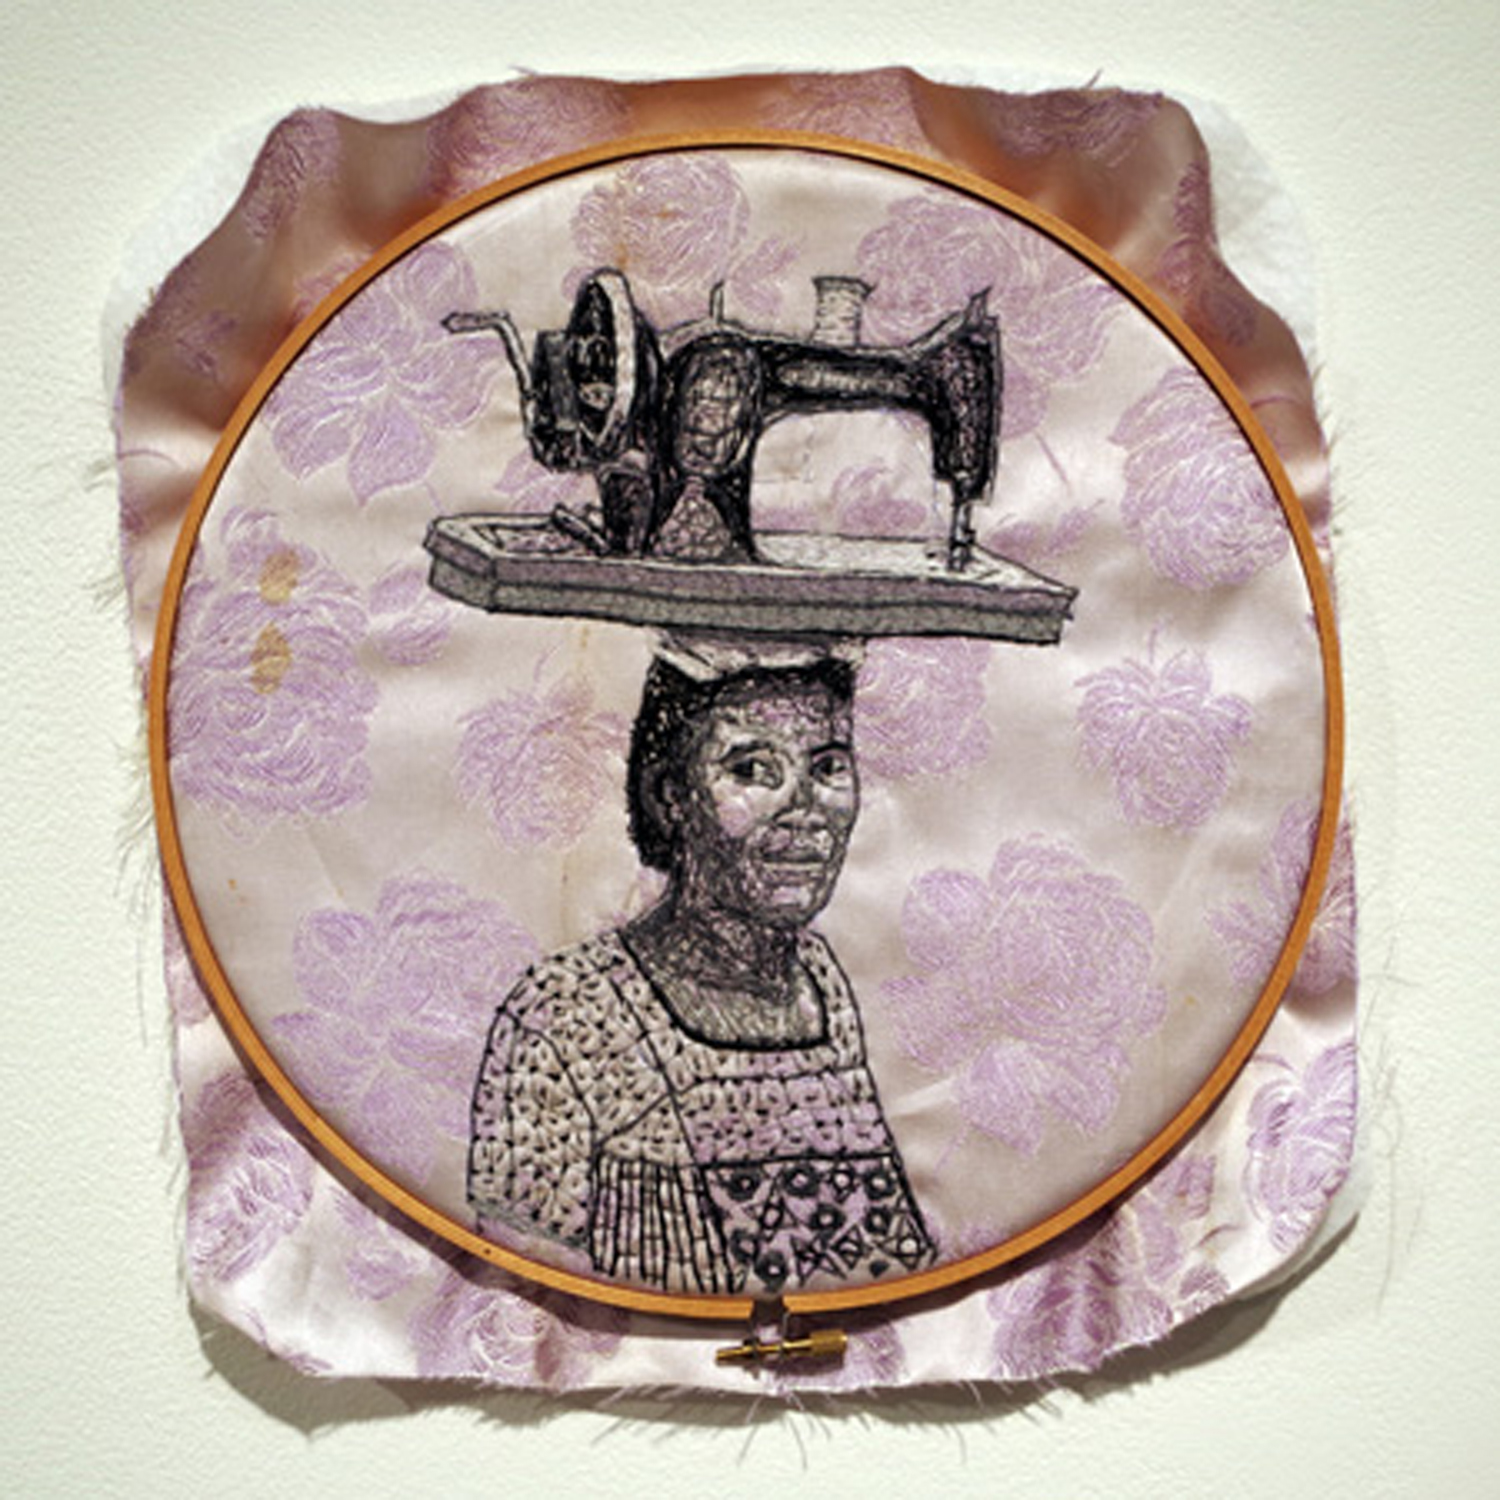 23. 'Maker's Mind', Linda van der Merwe, Mother's dress material 1950's, embroidery threads, hoop, $200